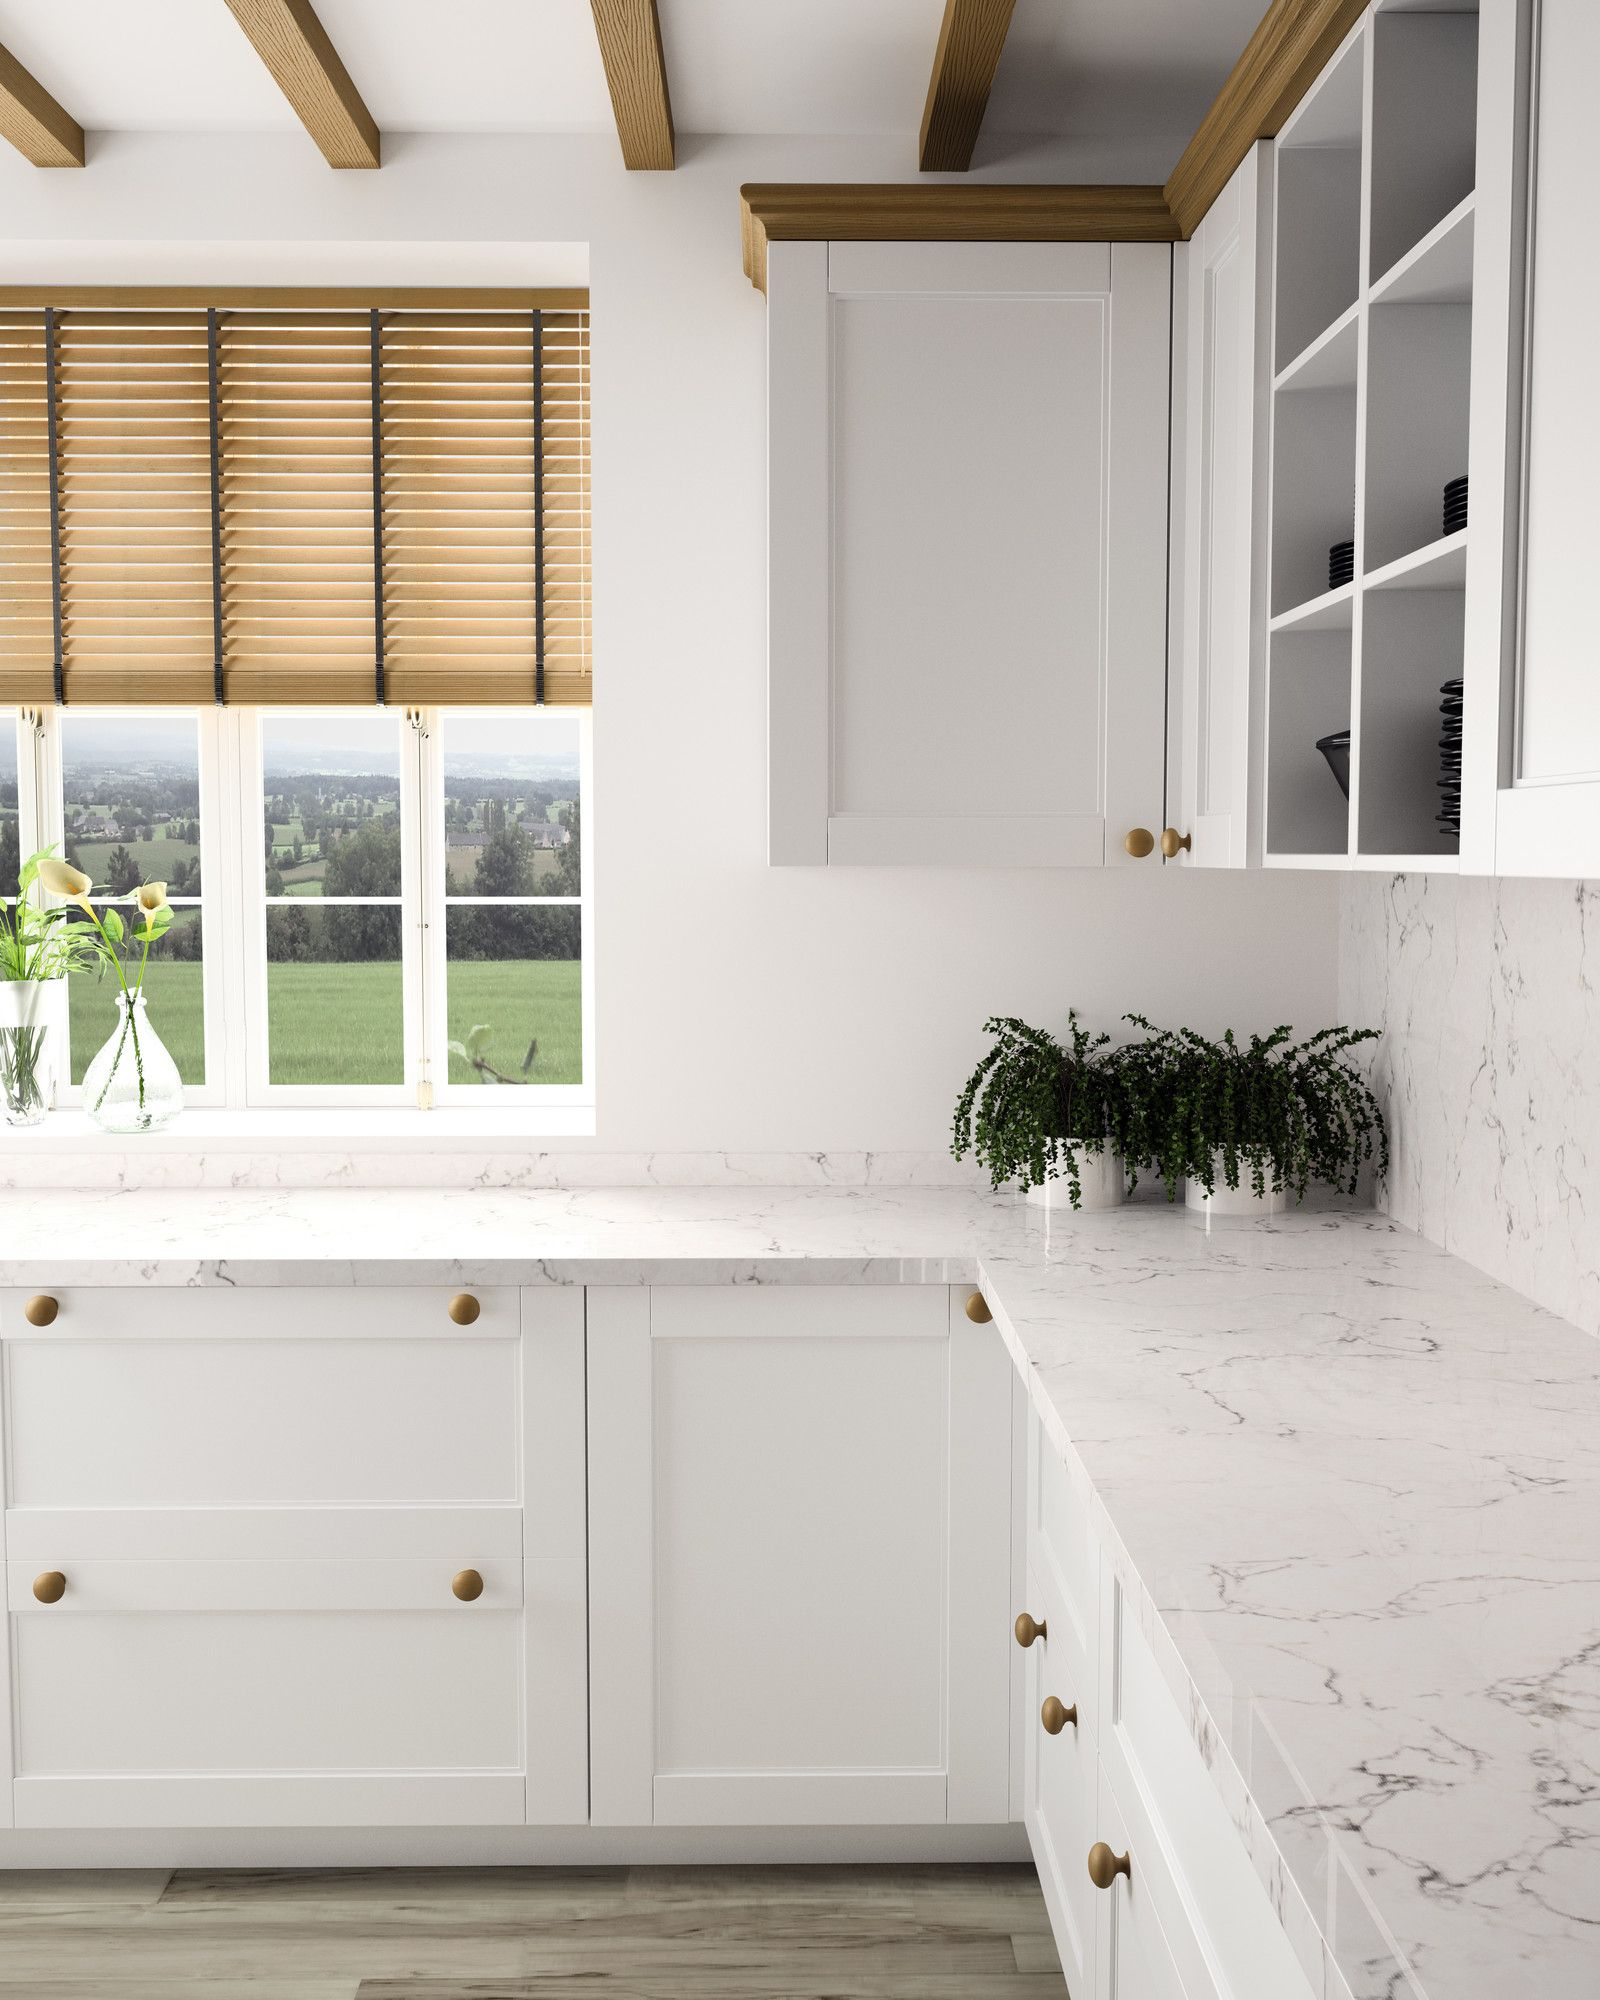 Silestone White Arabesque Color sold at Home Depot Could